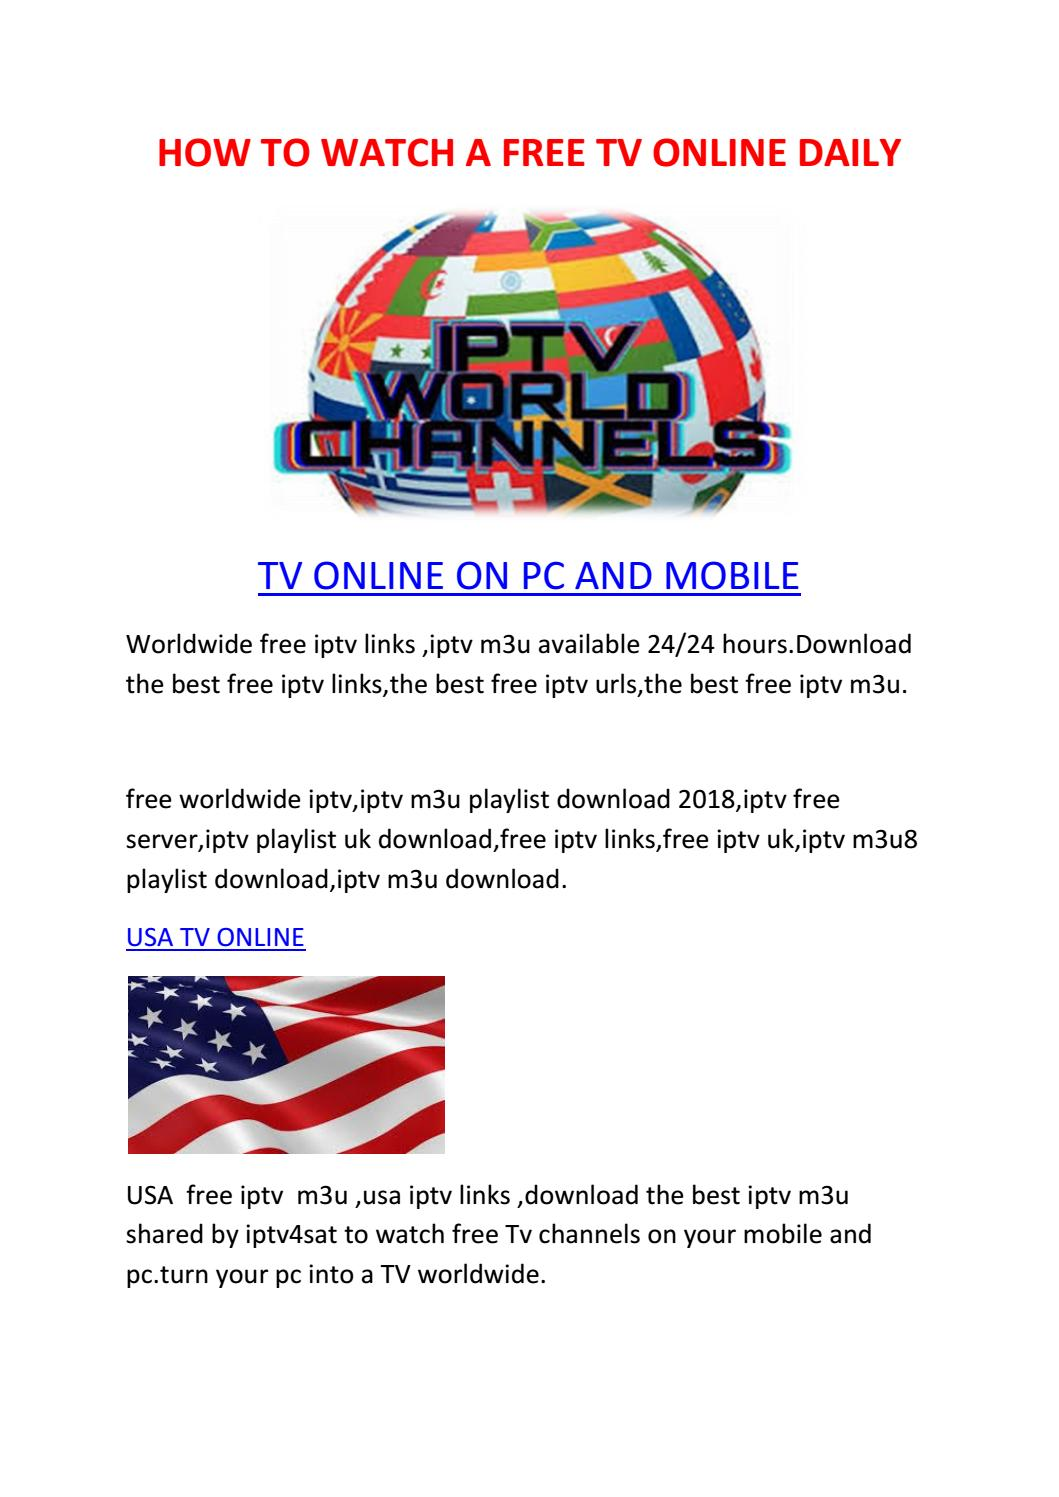 Smart Iptv Url Links How To Watch A Free Tv Online Daily By Smart Iptv Issuu